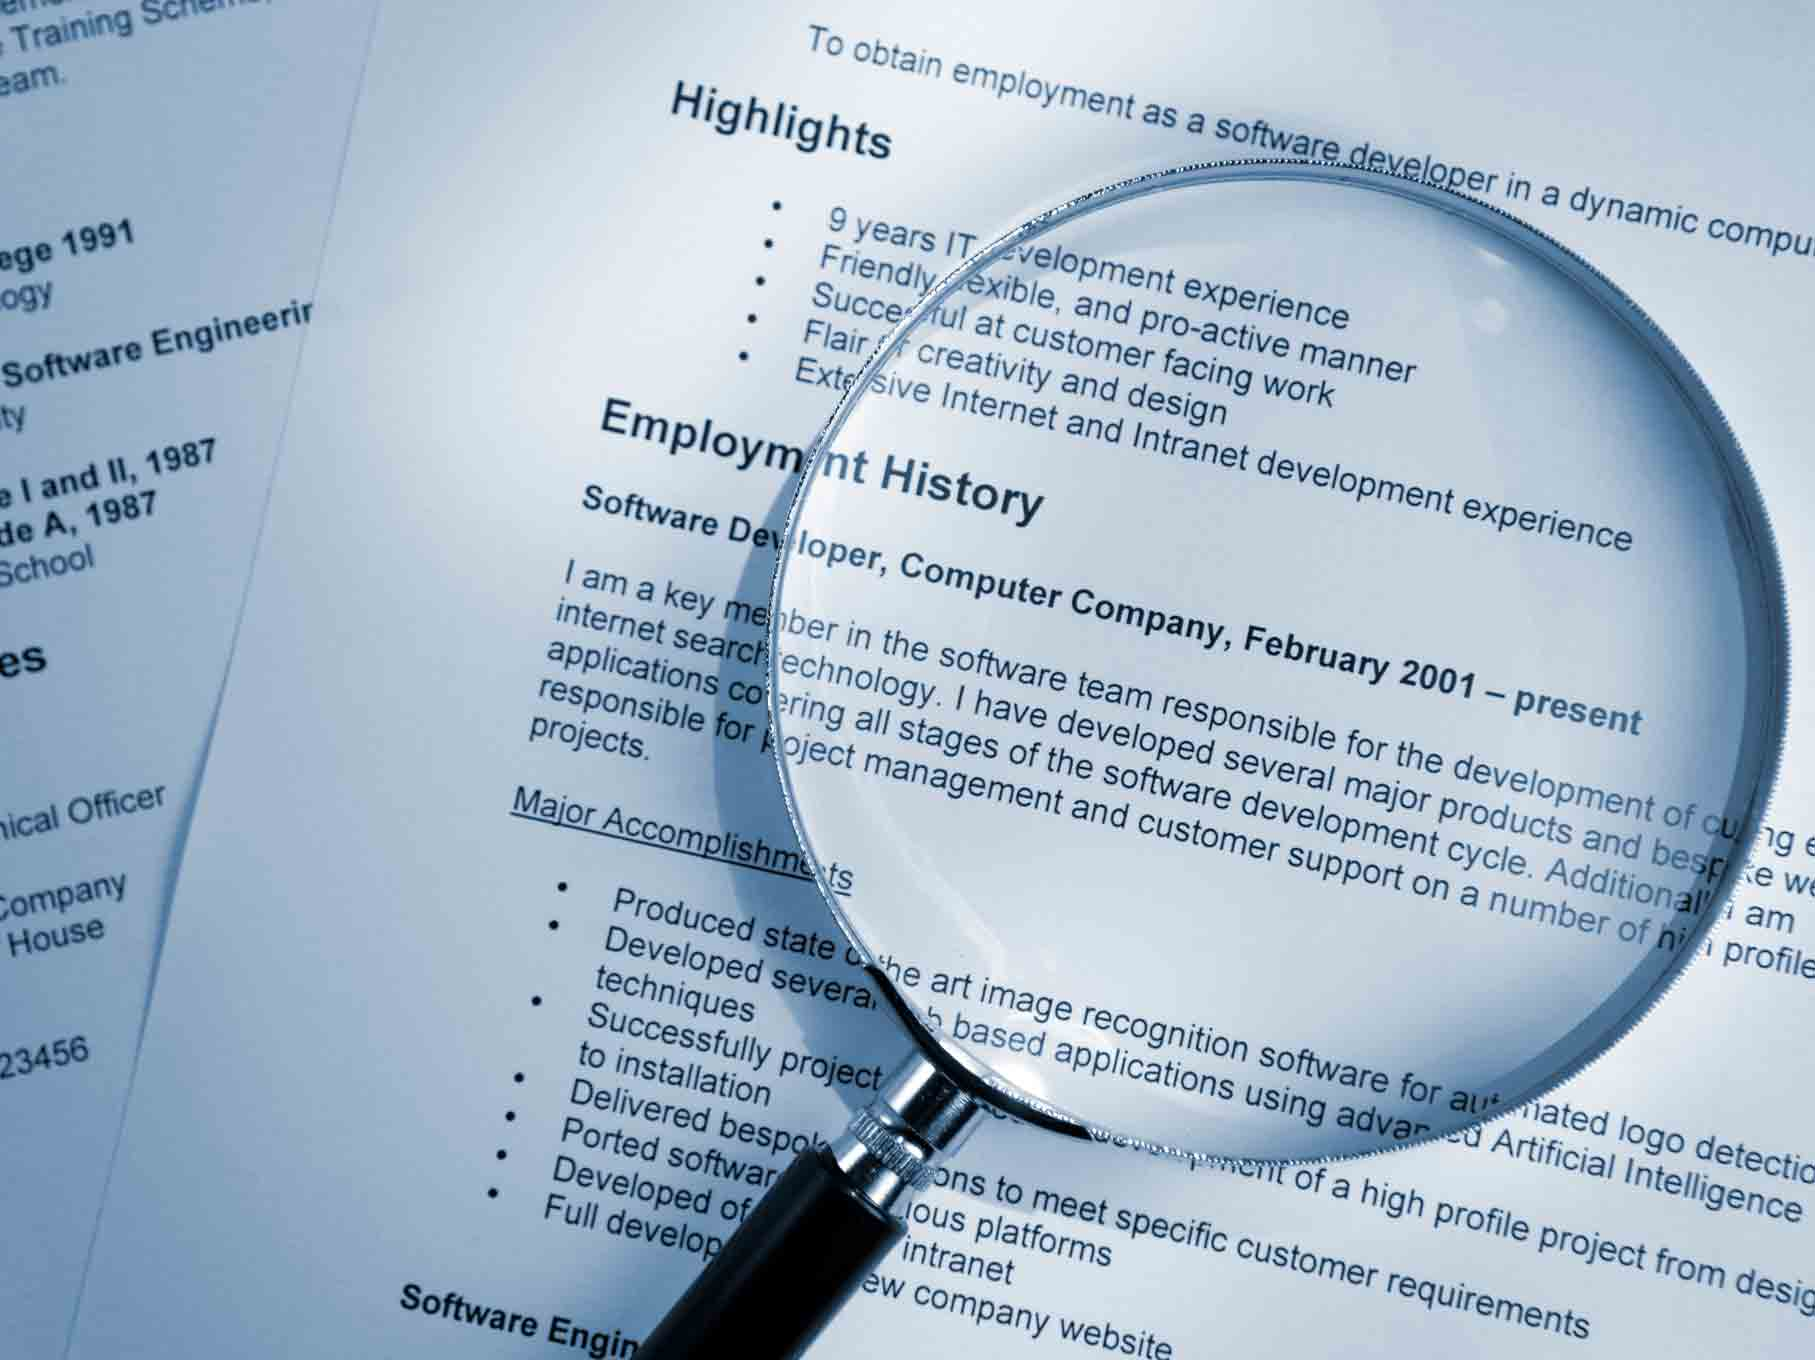 resumes of people looking for jobs